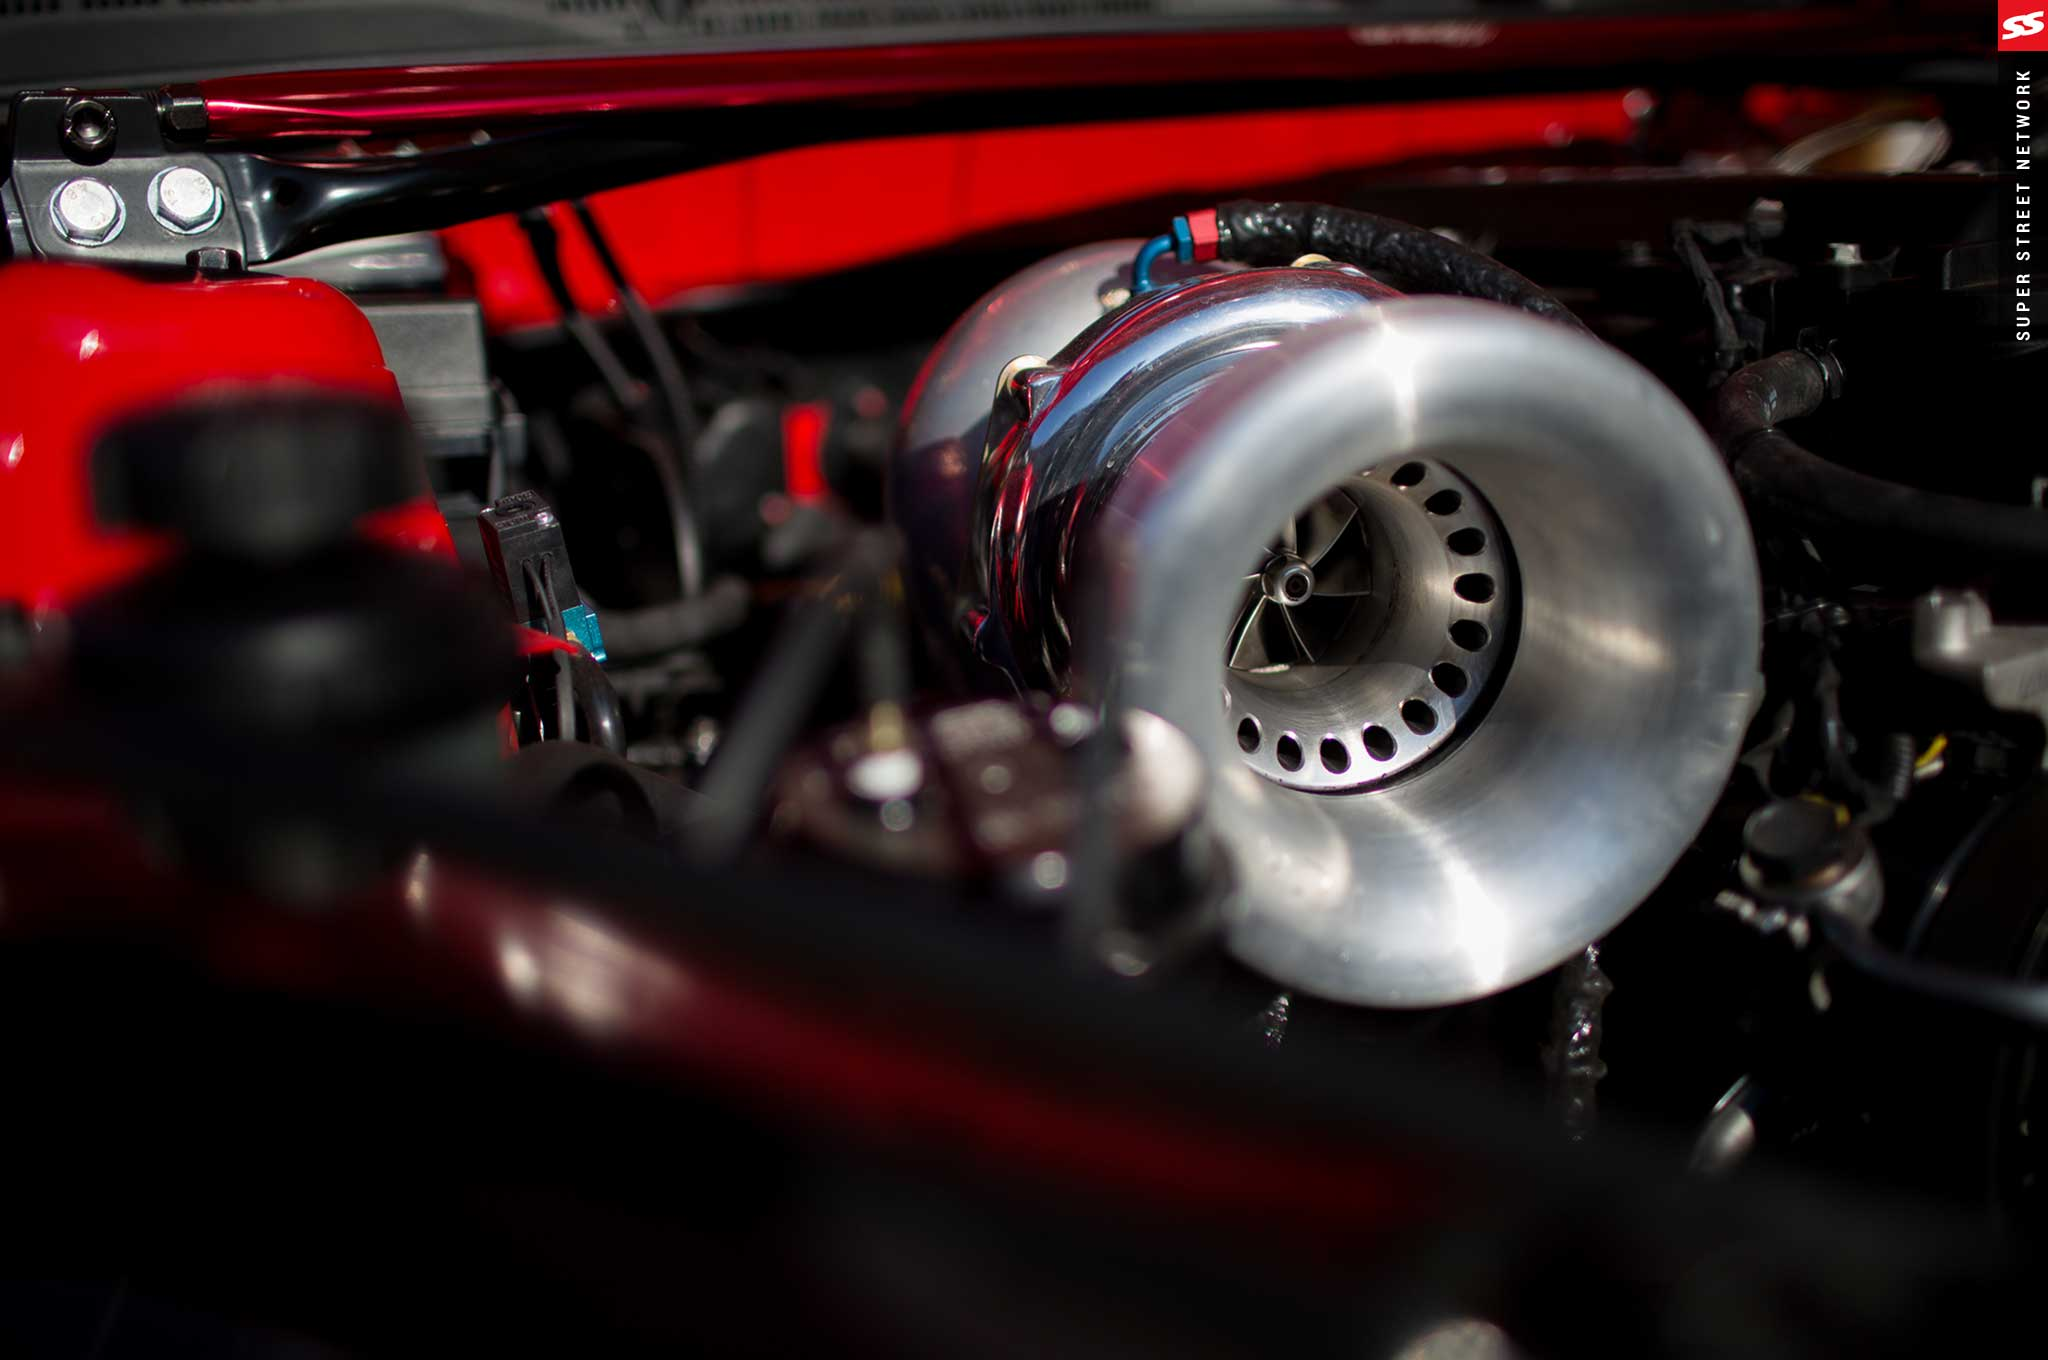 BTR Builds a 850whp 2014 Hyundai Genesis Coupe on Nitrous